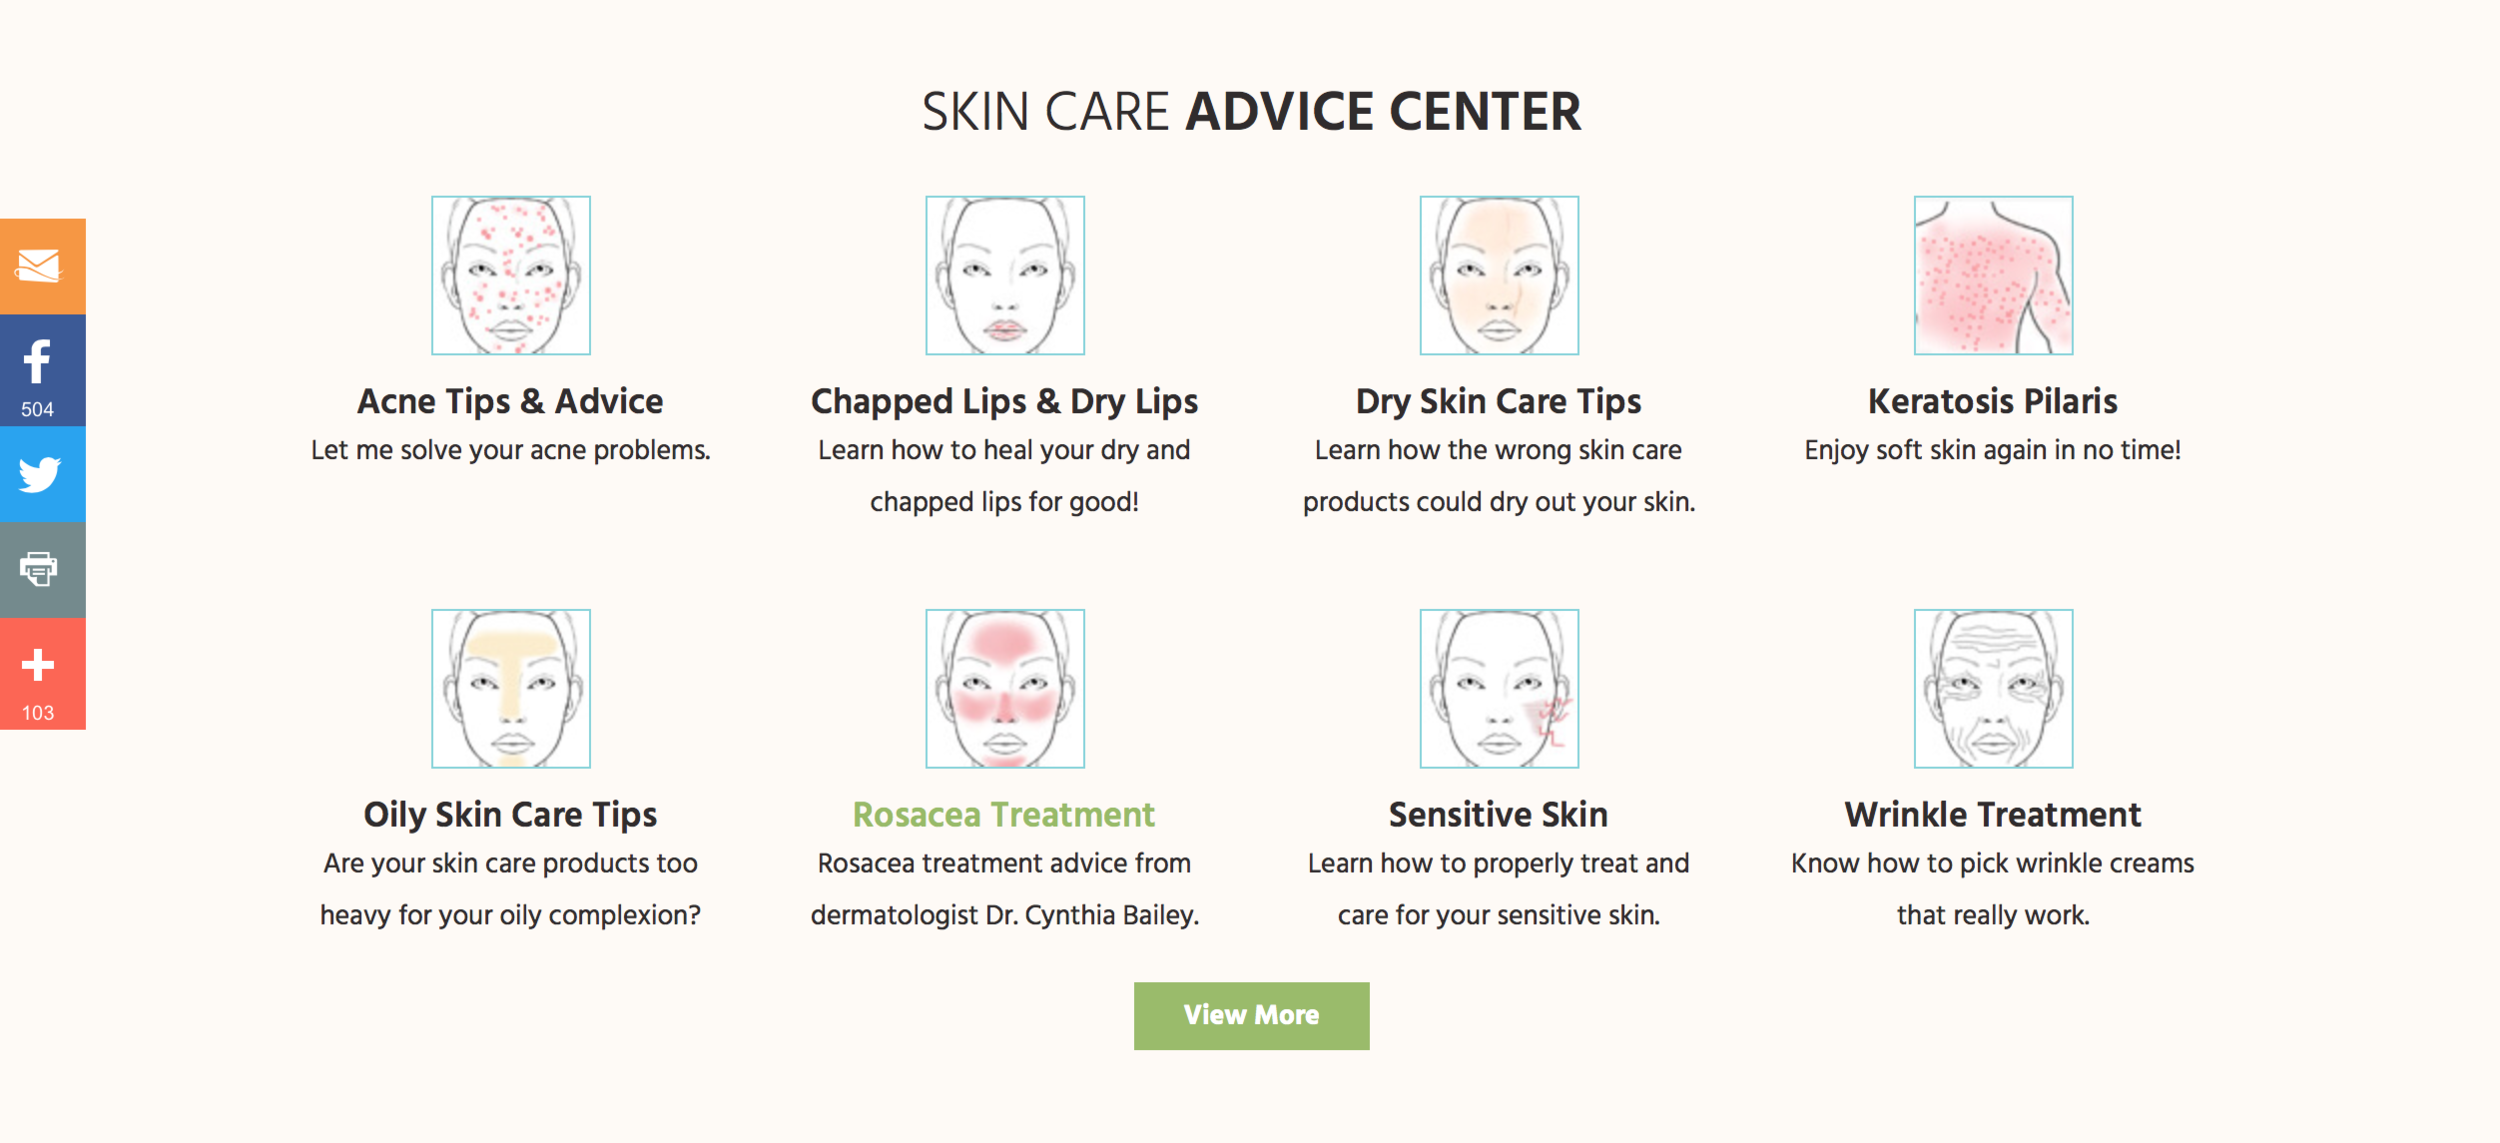 Dr. Cynthia Bailey's dermatology practice website shows common skin conditions and treatments.